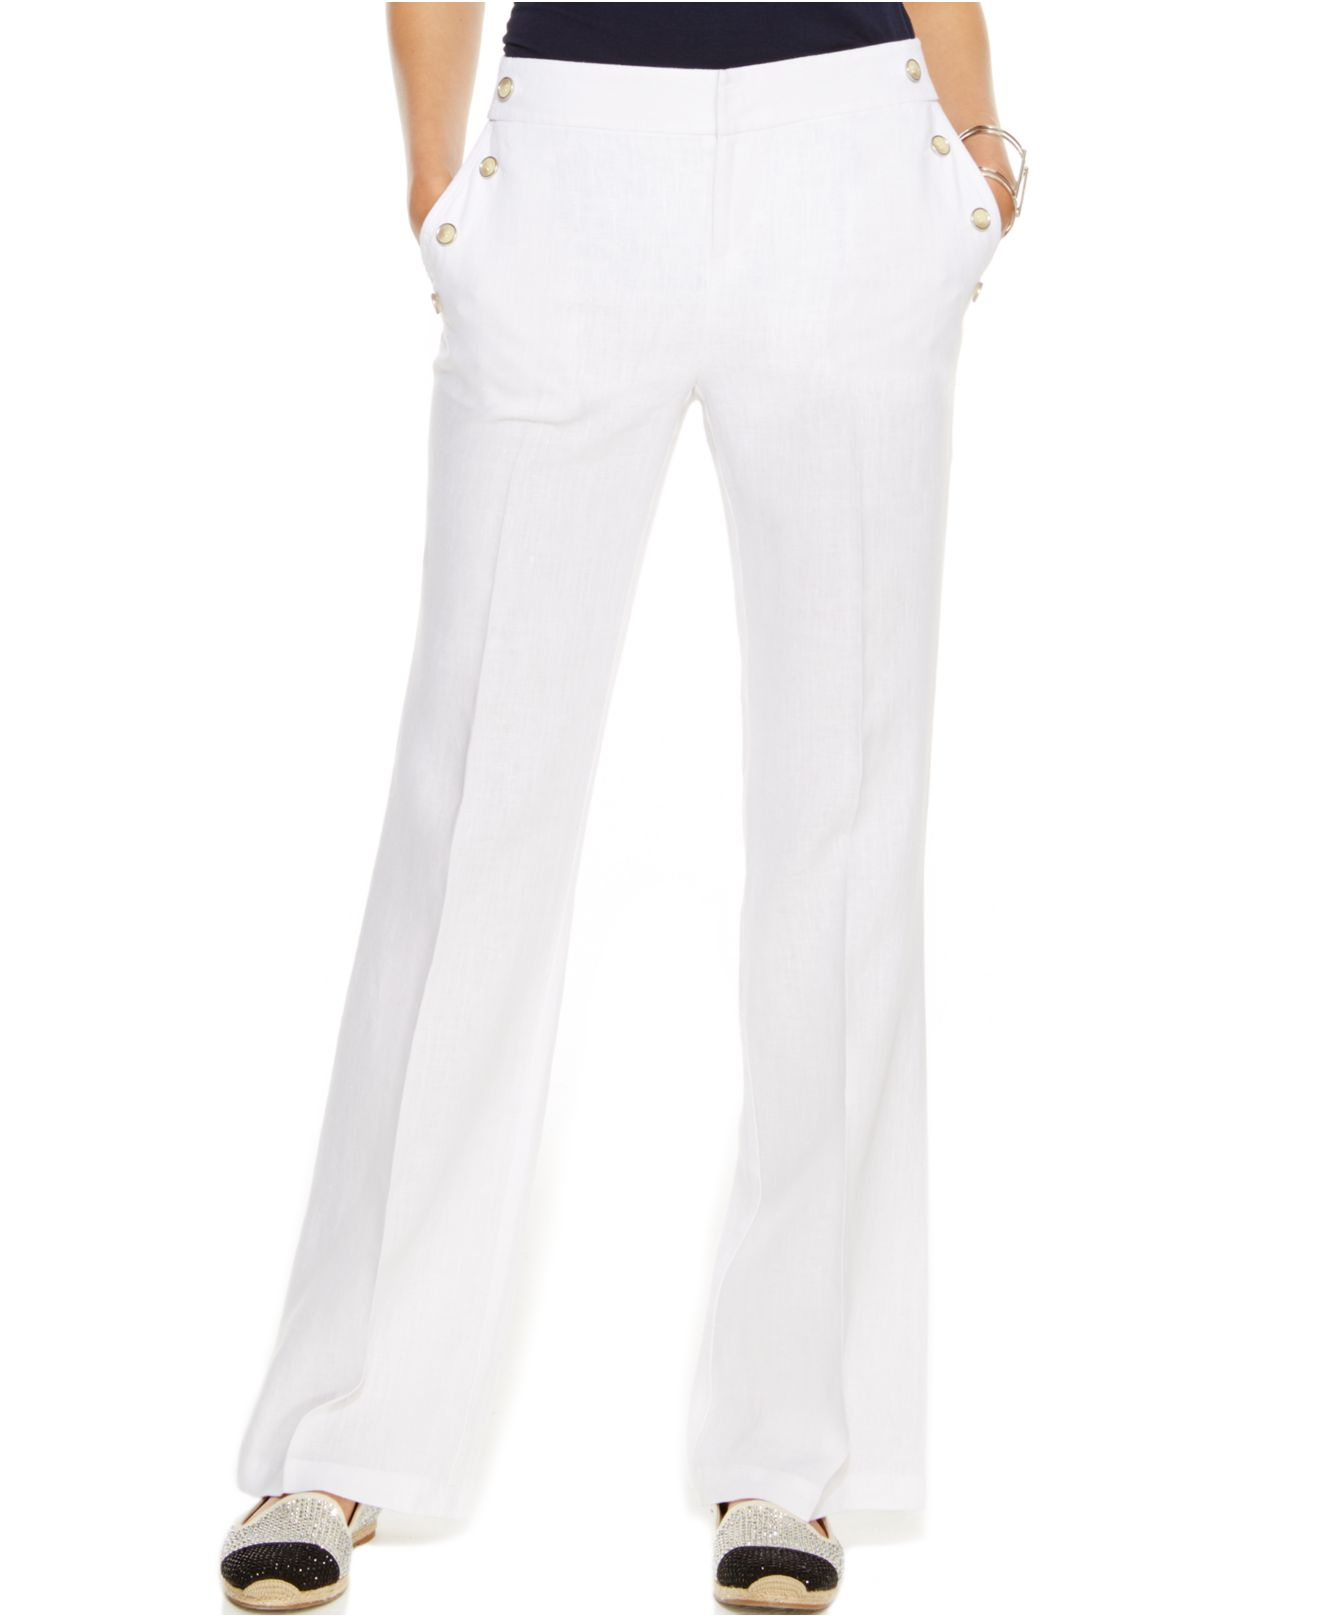 Inc international concepts Petite Wide-leg Linen Sailor Pants in ...